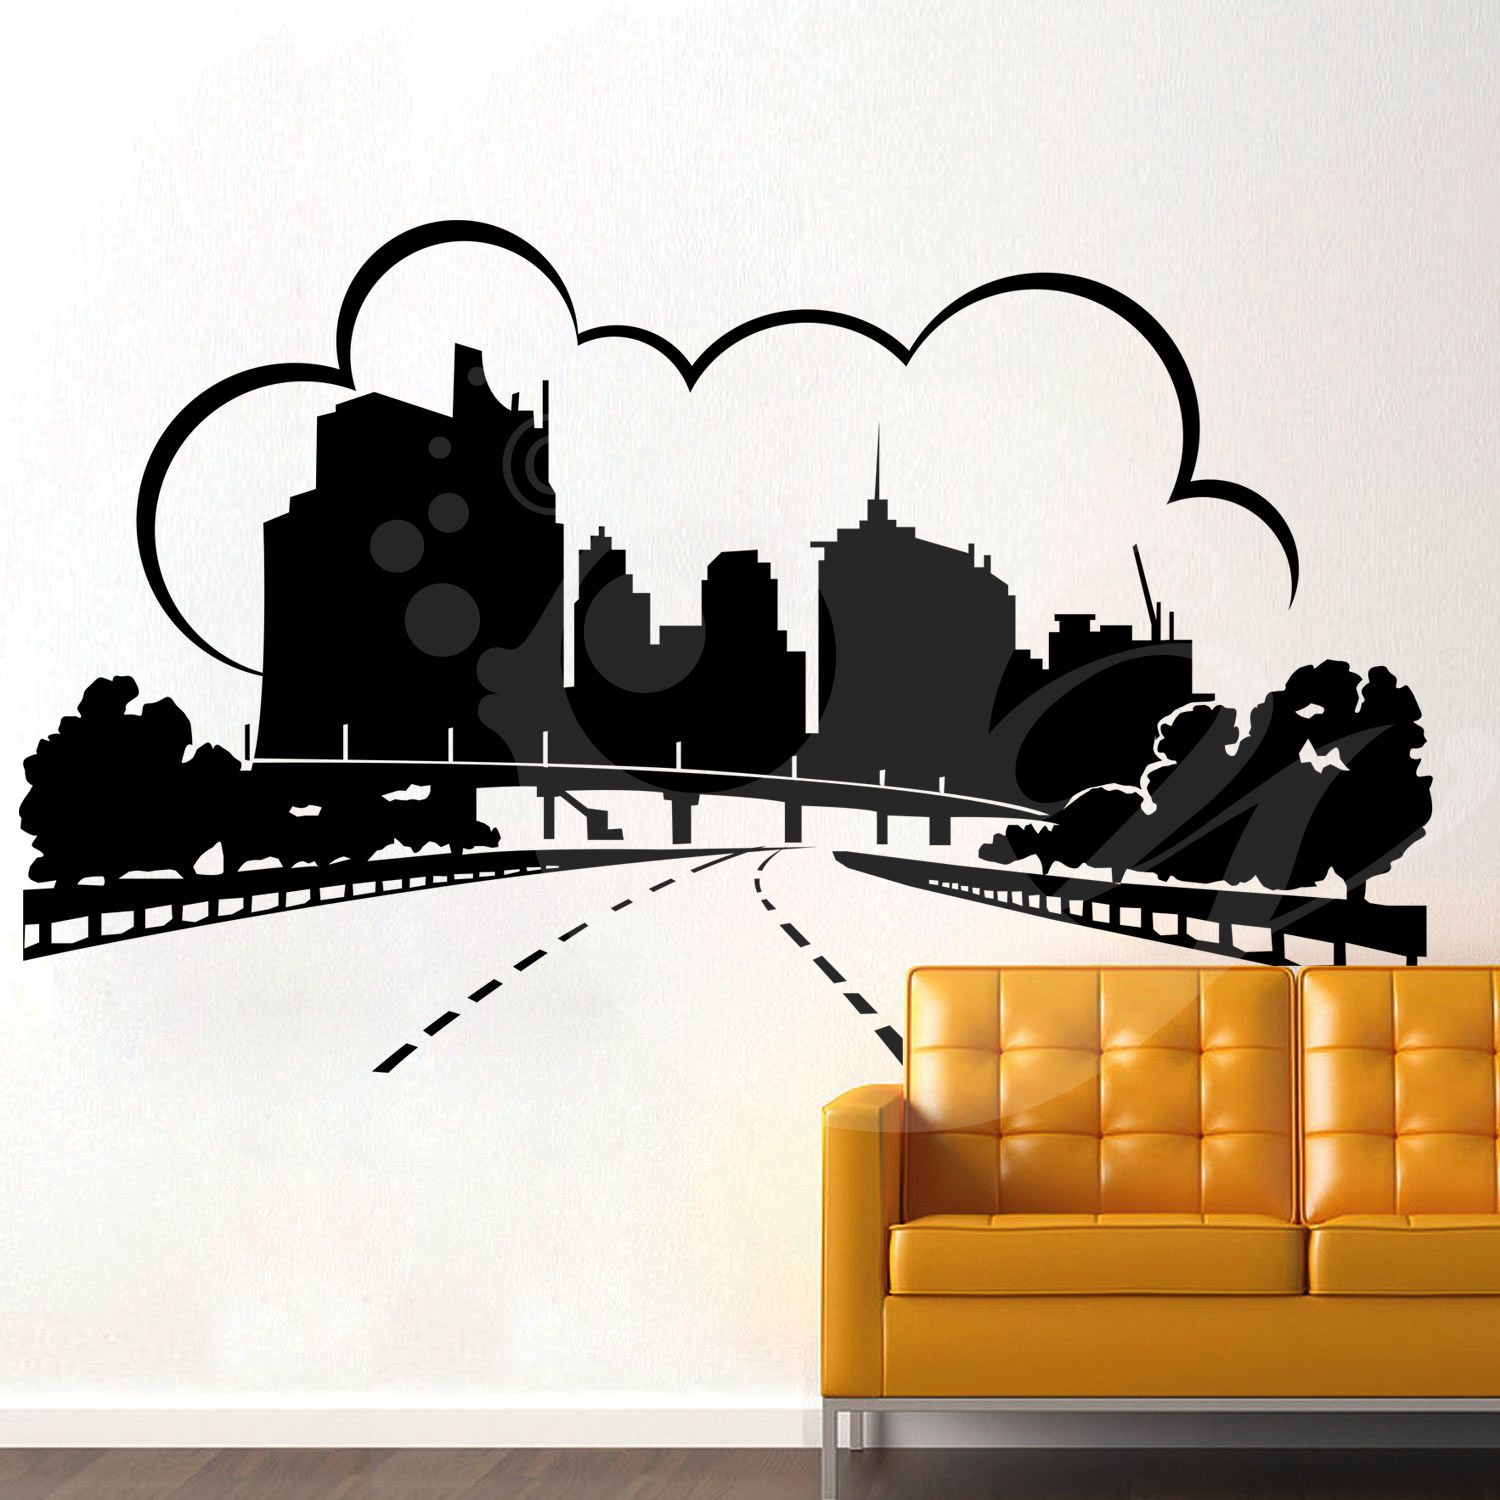 With this Urban City Wall Sticker Decal you can decorate your walls in one of the most modern and elegant ways